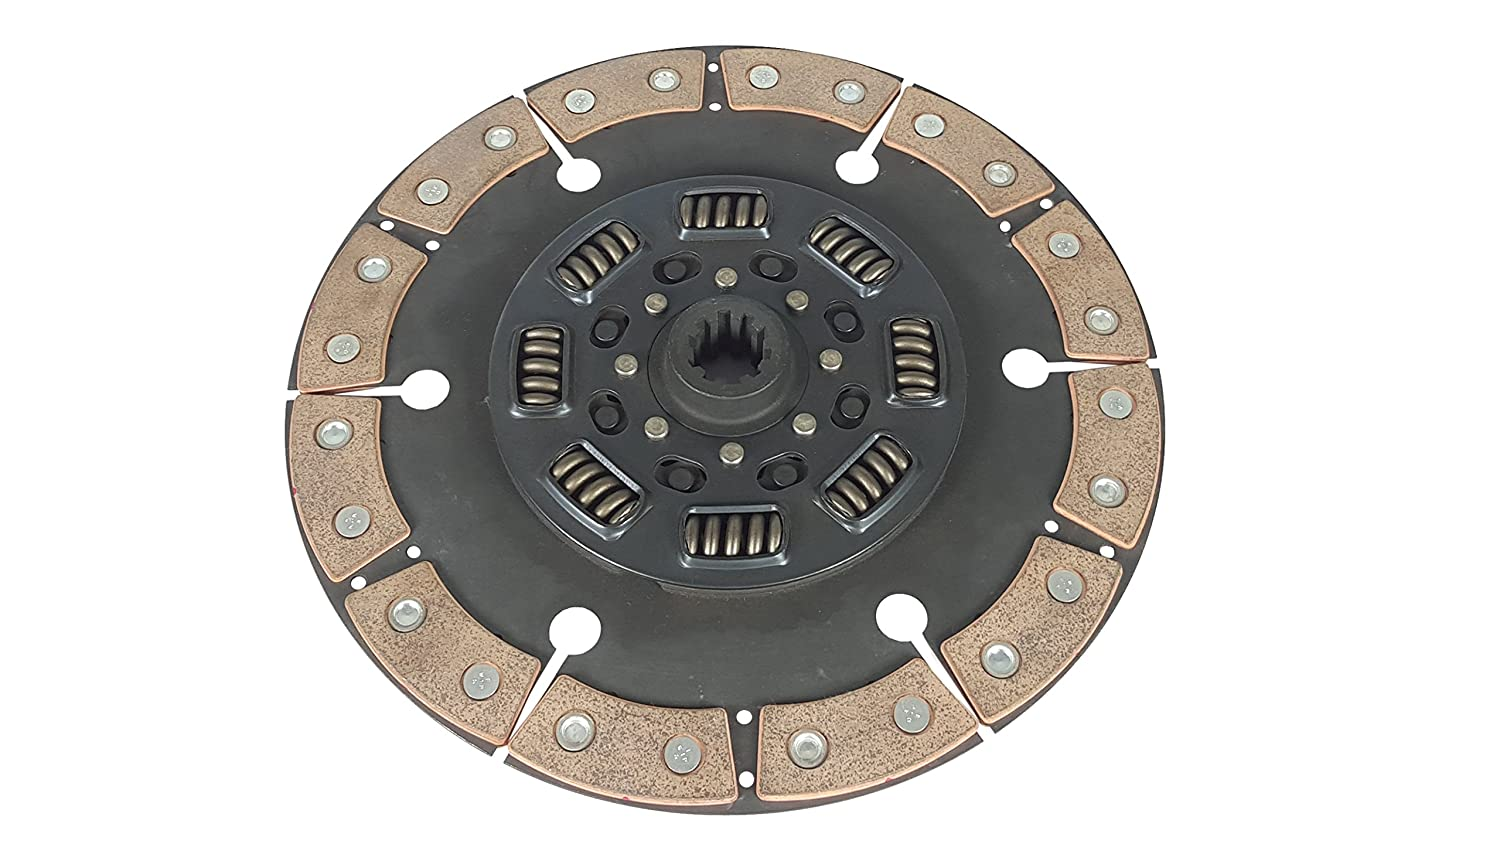 Clutch Kit Works With Ford F250 F350 F59 Base XL Lariat XLT Eddie Special 1994-1997 7.3L V8 DIESEL OHV Turbocharged Naturally Aspirated Only Solid Flywheel 6-Puck Clutch Disc Stage 4